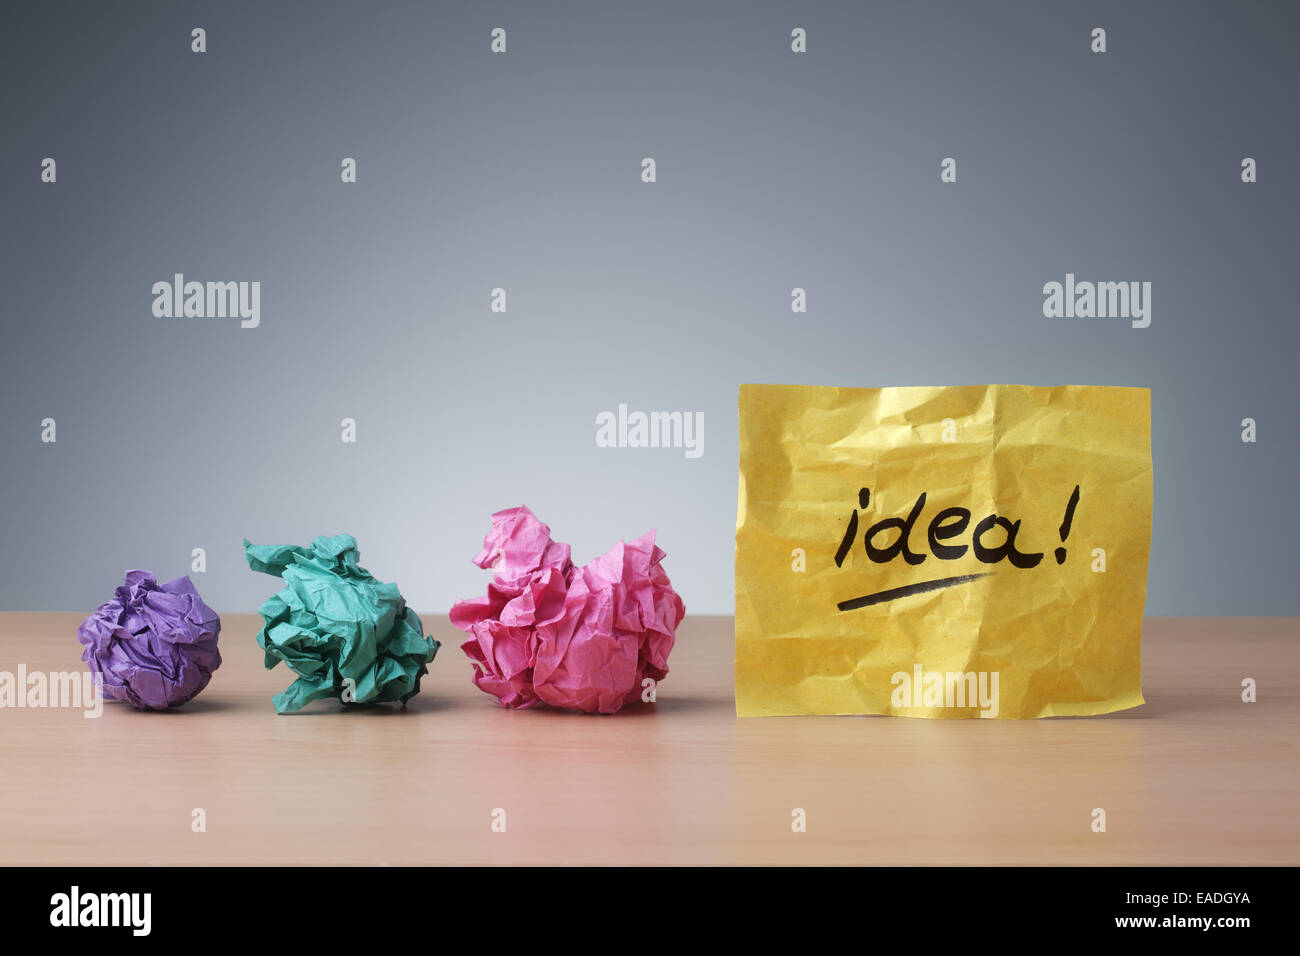 Evolving idea - Stock Image